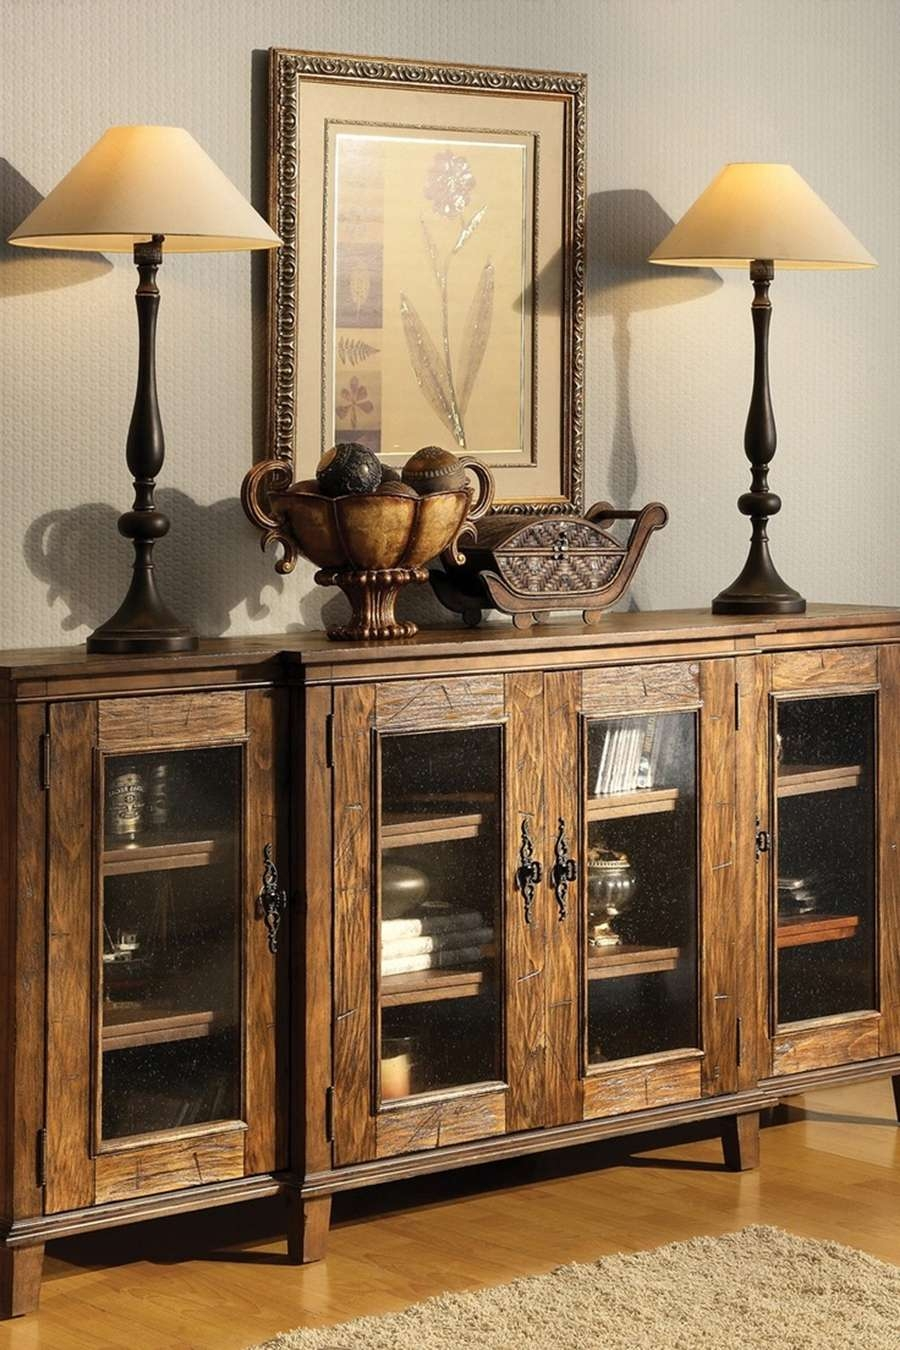 Rustic Sideboard Ideas : Uses Rustic Sideboard Furniture – Gazebo Throughout Rustic Sideboards Furniture (View 16 of 20)